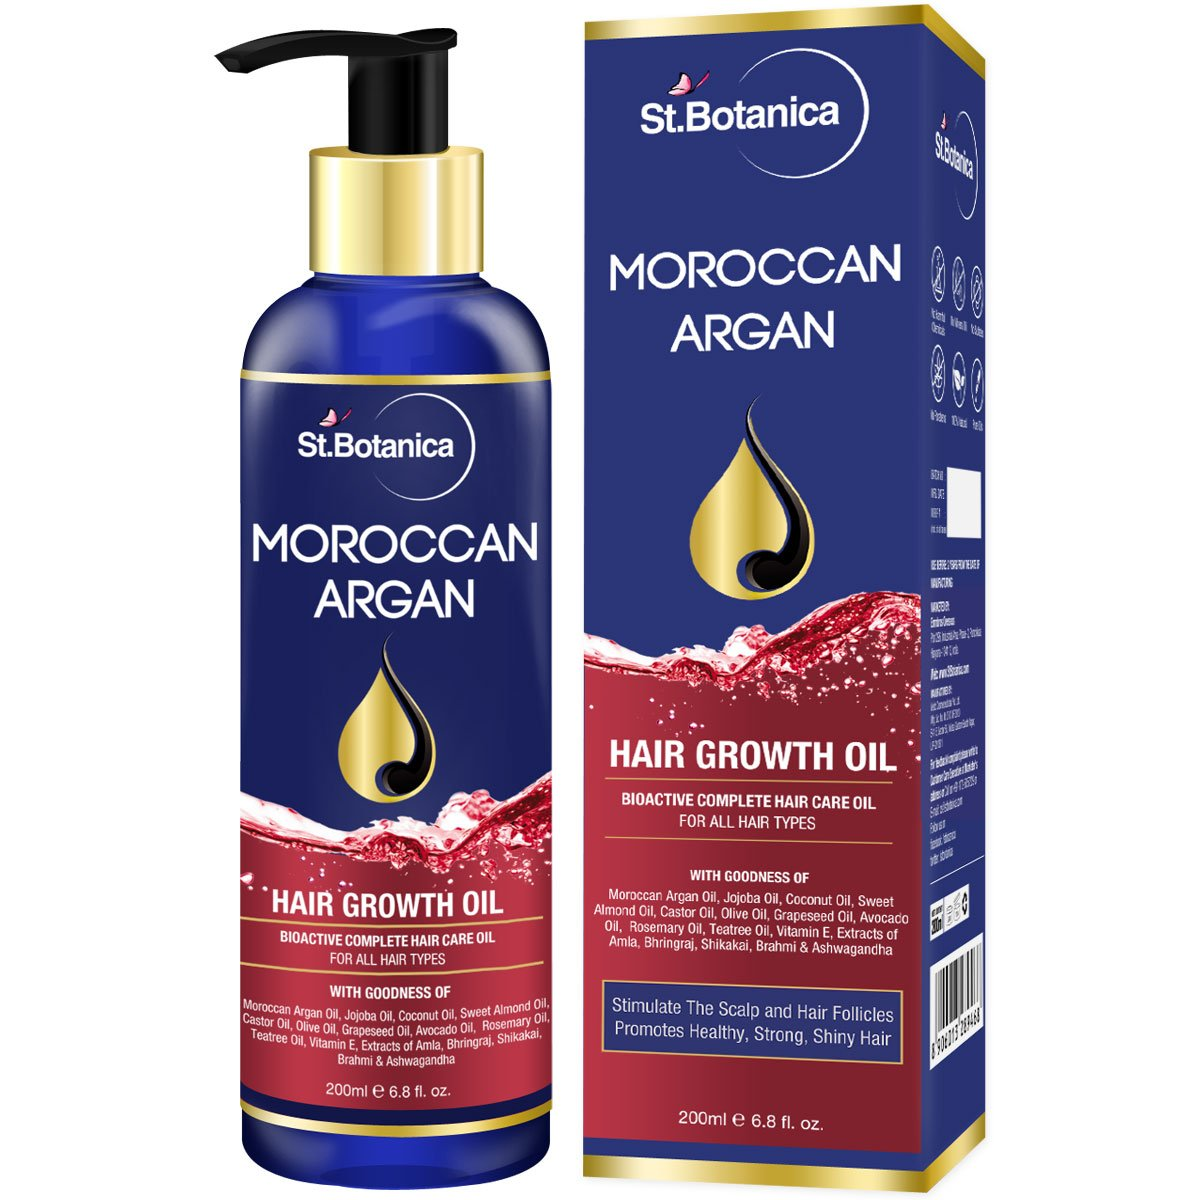 StBotanica Moroccan Argan Hair Growth Oil (With Pure Argan, Jojoba, Almond, Castor, Olive, Avocado, Rosemary Oils), 200ml product image